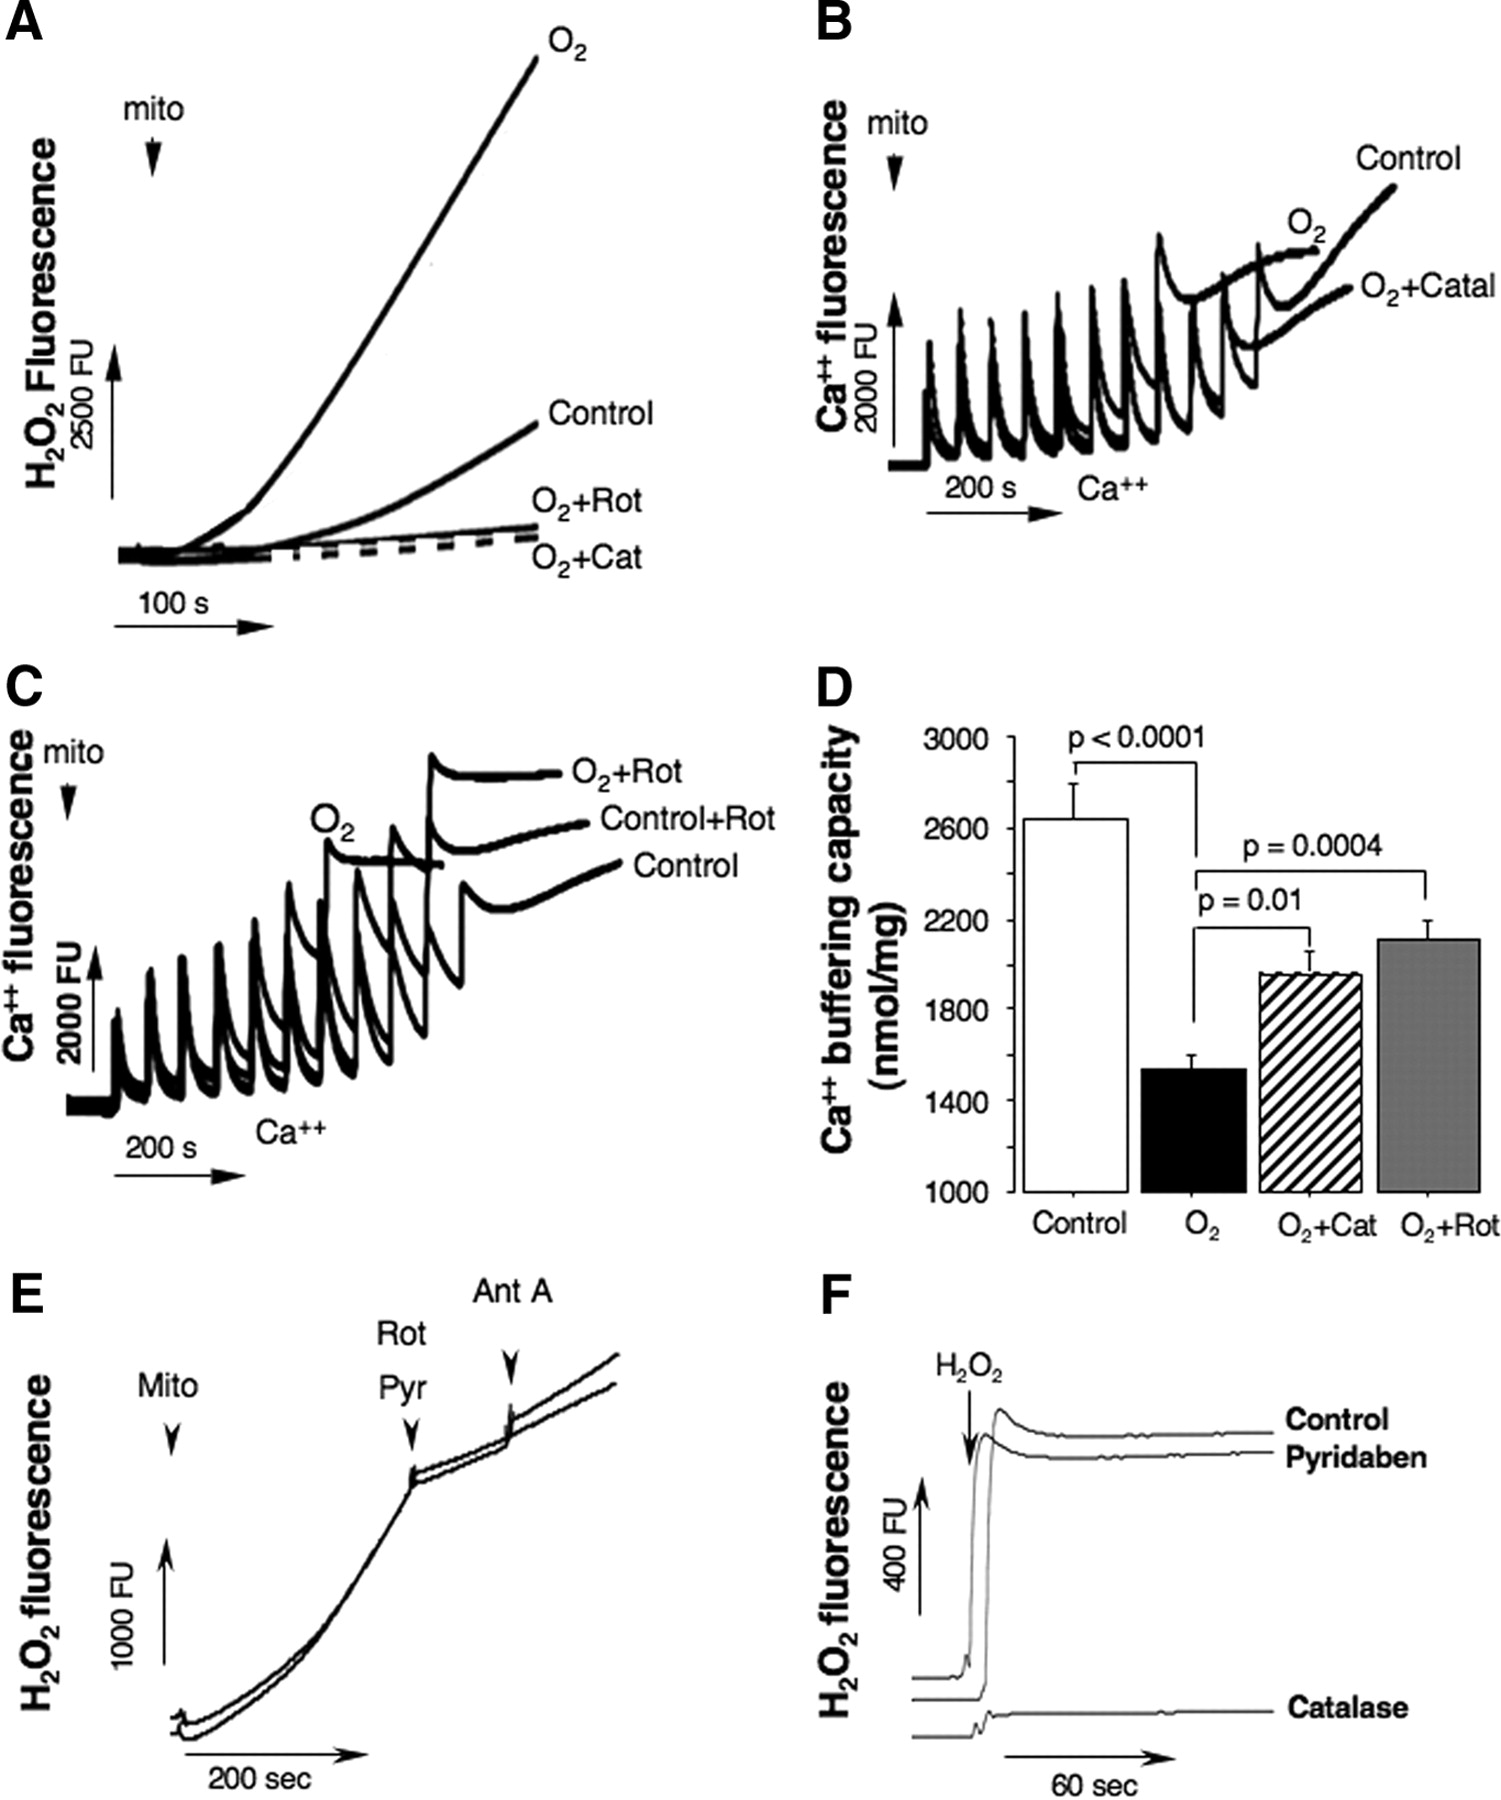 The Oxygen Free Radicals Originating from Mitochondrial